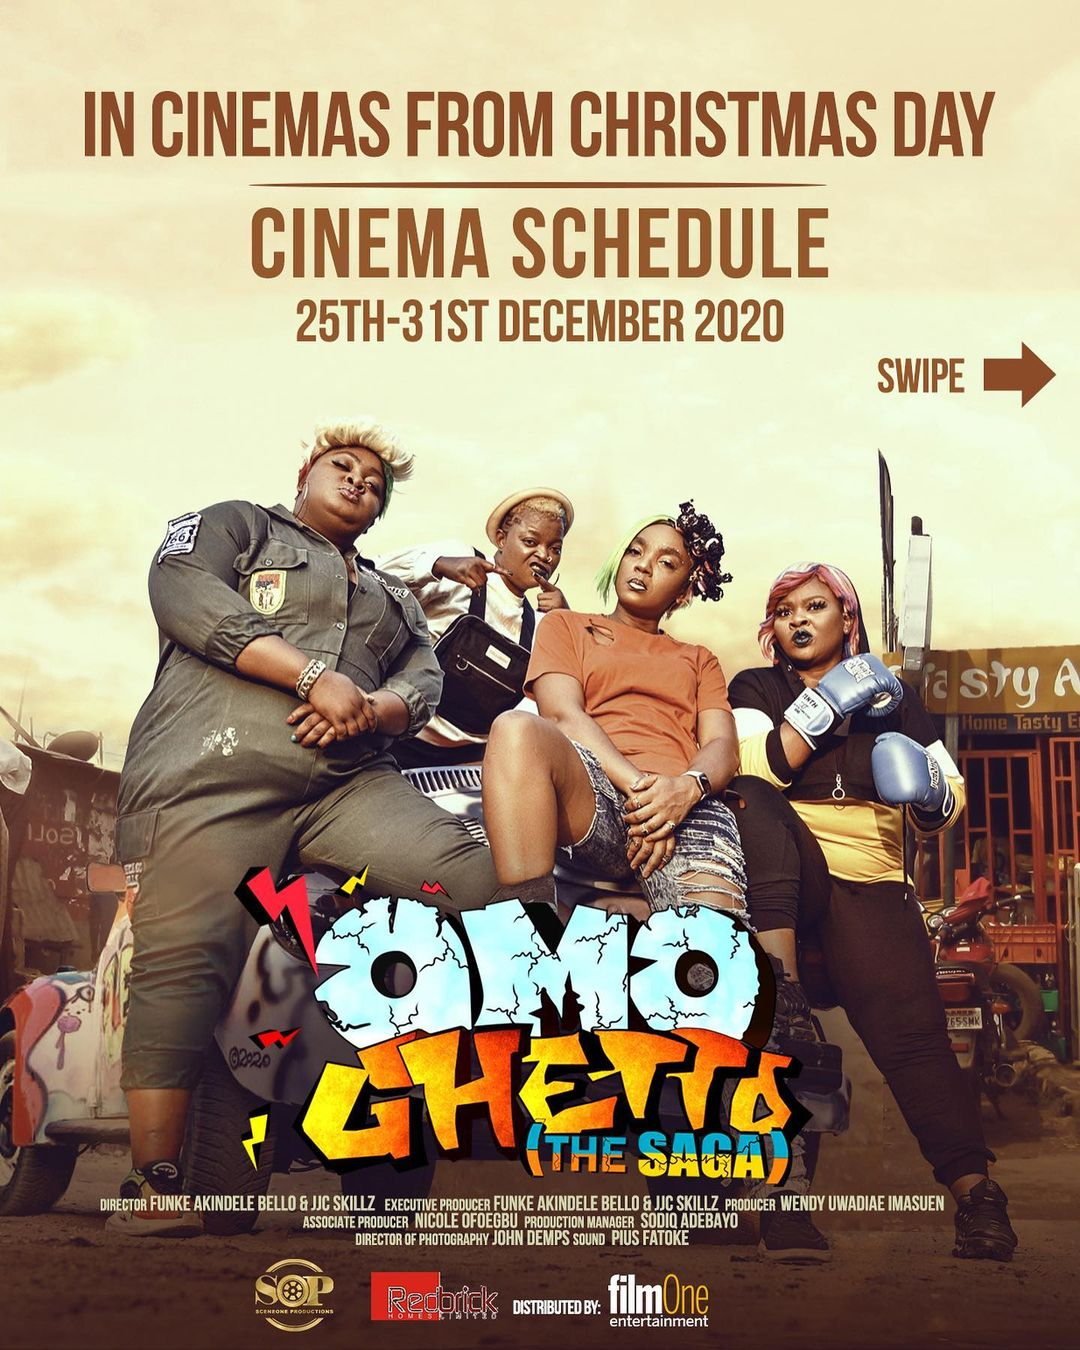 """132626120 141850457540587 8004616402686672544 n - Omo Ghetto """"The Saga"""" Bursts N124 Million Opening Weekend, Breaks All Time  Nollywood Box Office Record Despite Pandemic Uncertainty"""